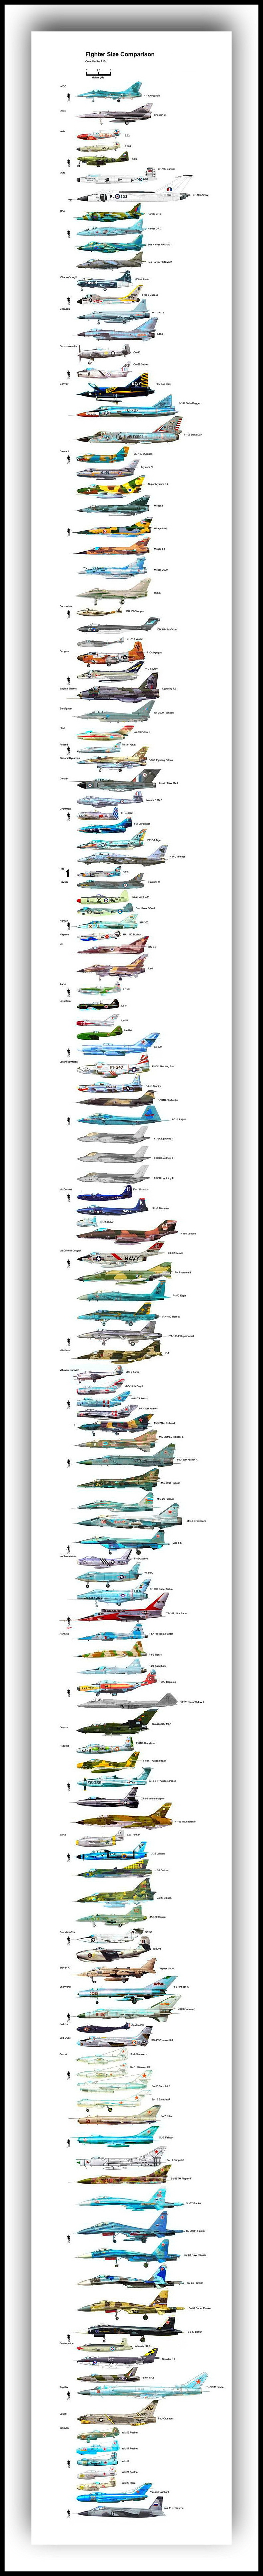 Fighter Jet Size Comparison as compiled by A13-x. The manufacturers are listed in alphabetical order. This is a super excellent illustration of jet size over the years by the many manufacturers of fighter jets throughout the world. Scroll through the long image at full size to see the detail.